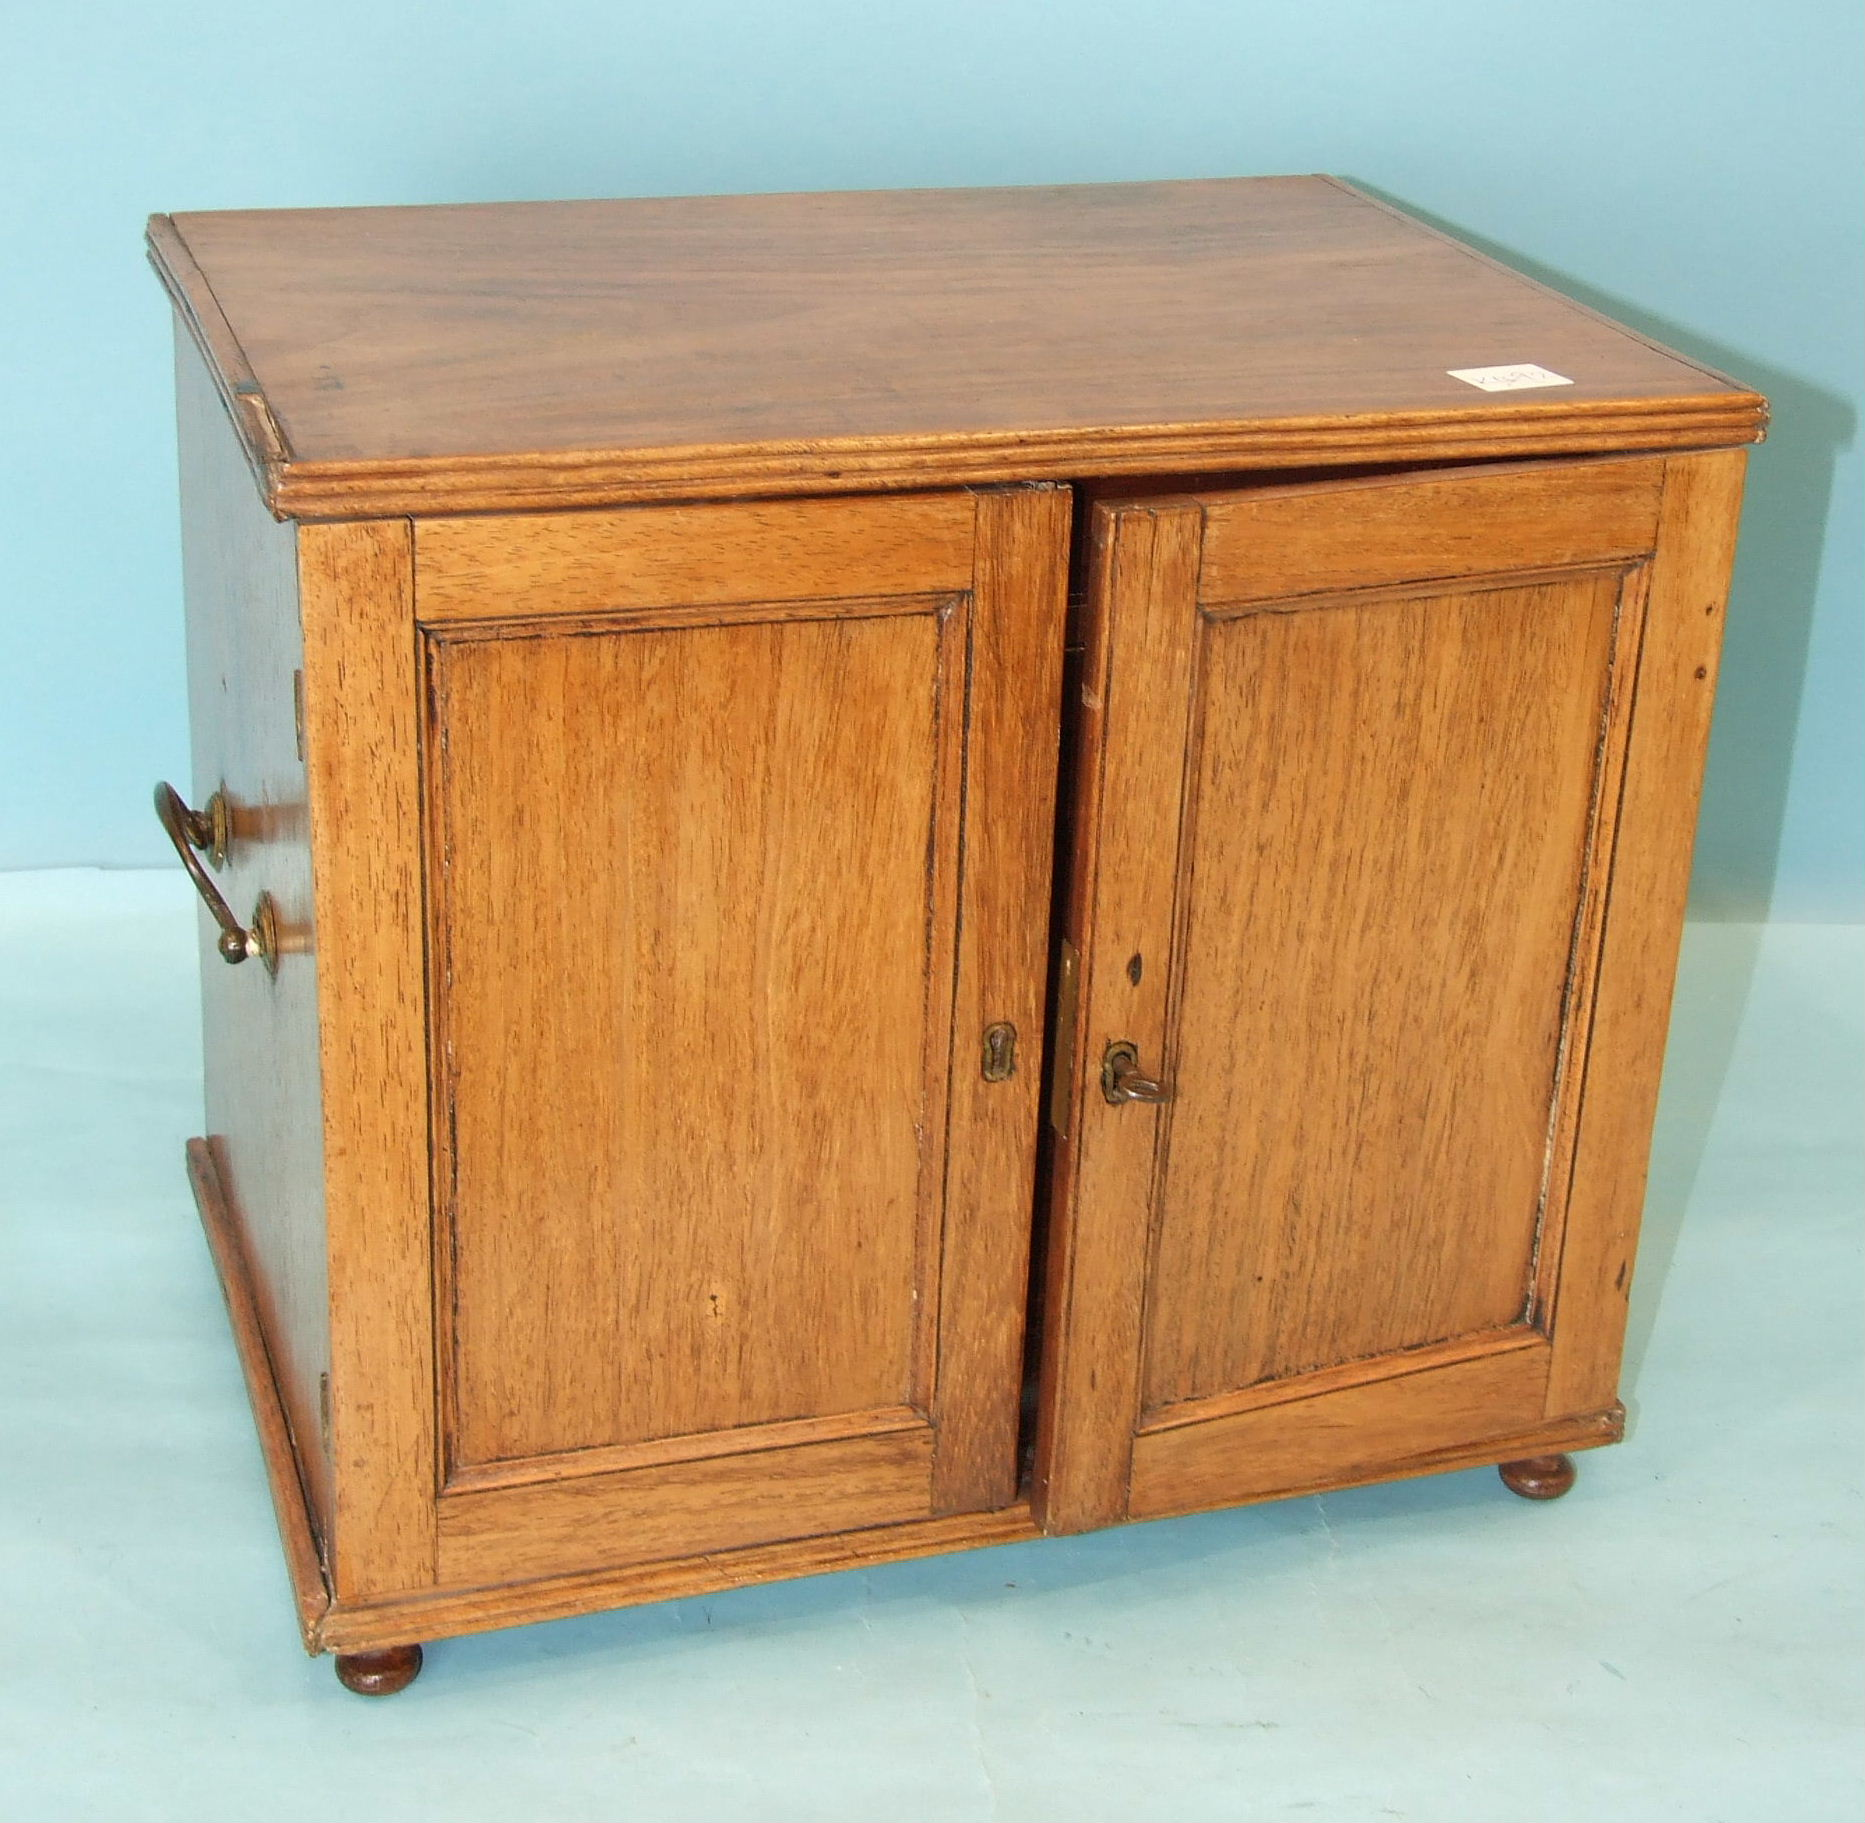 A 19th century hardwood collector's chest, having a pair of panelled doors enclosing six small